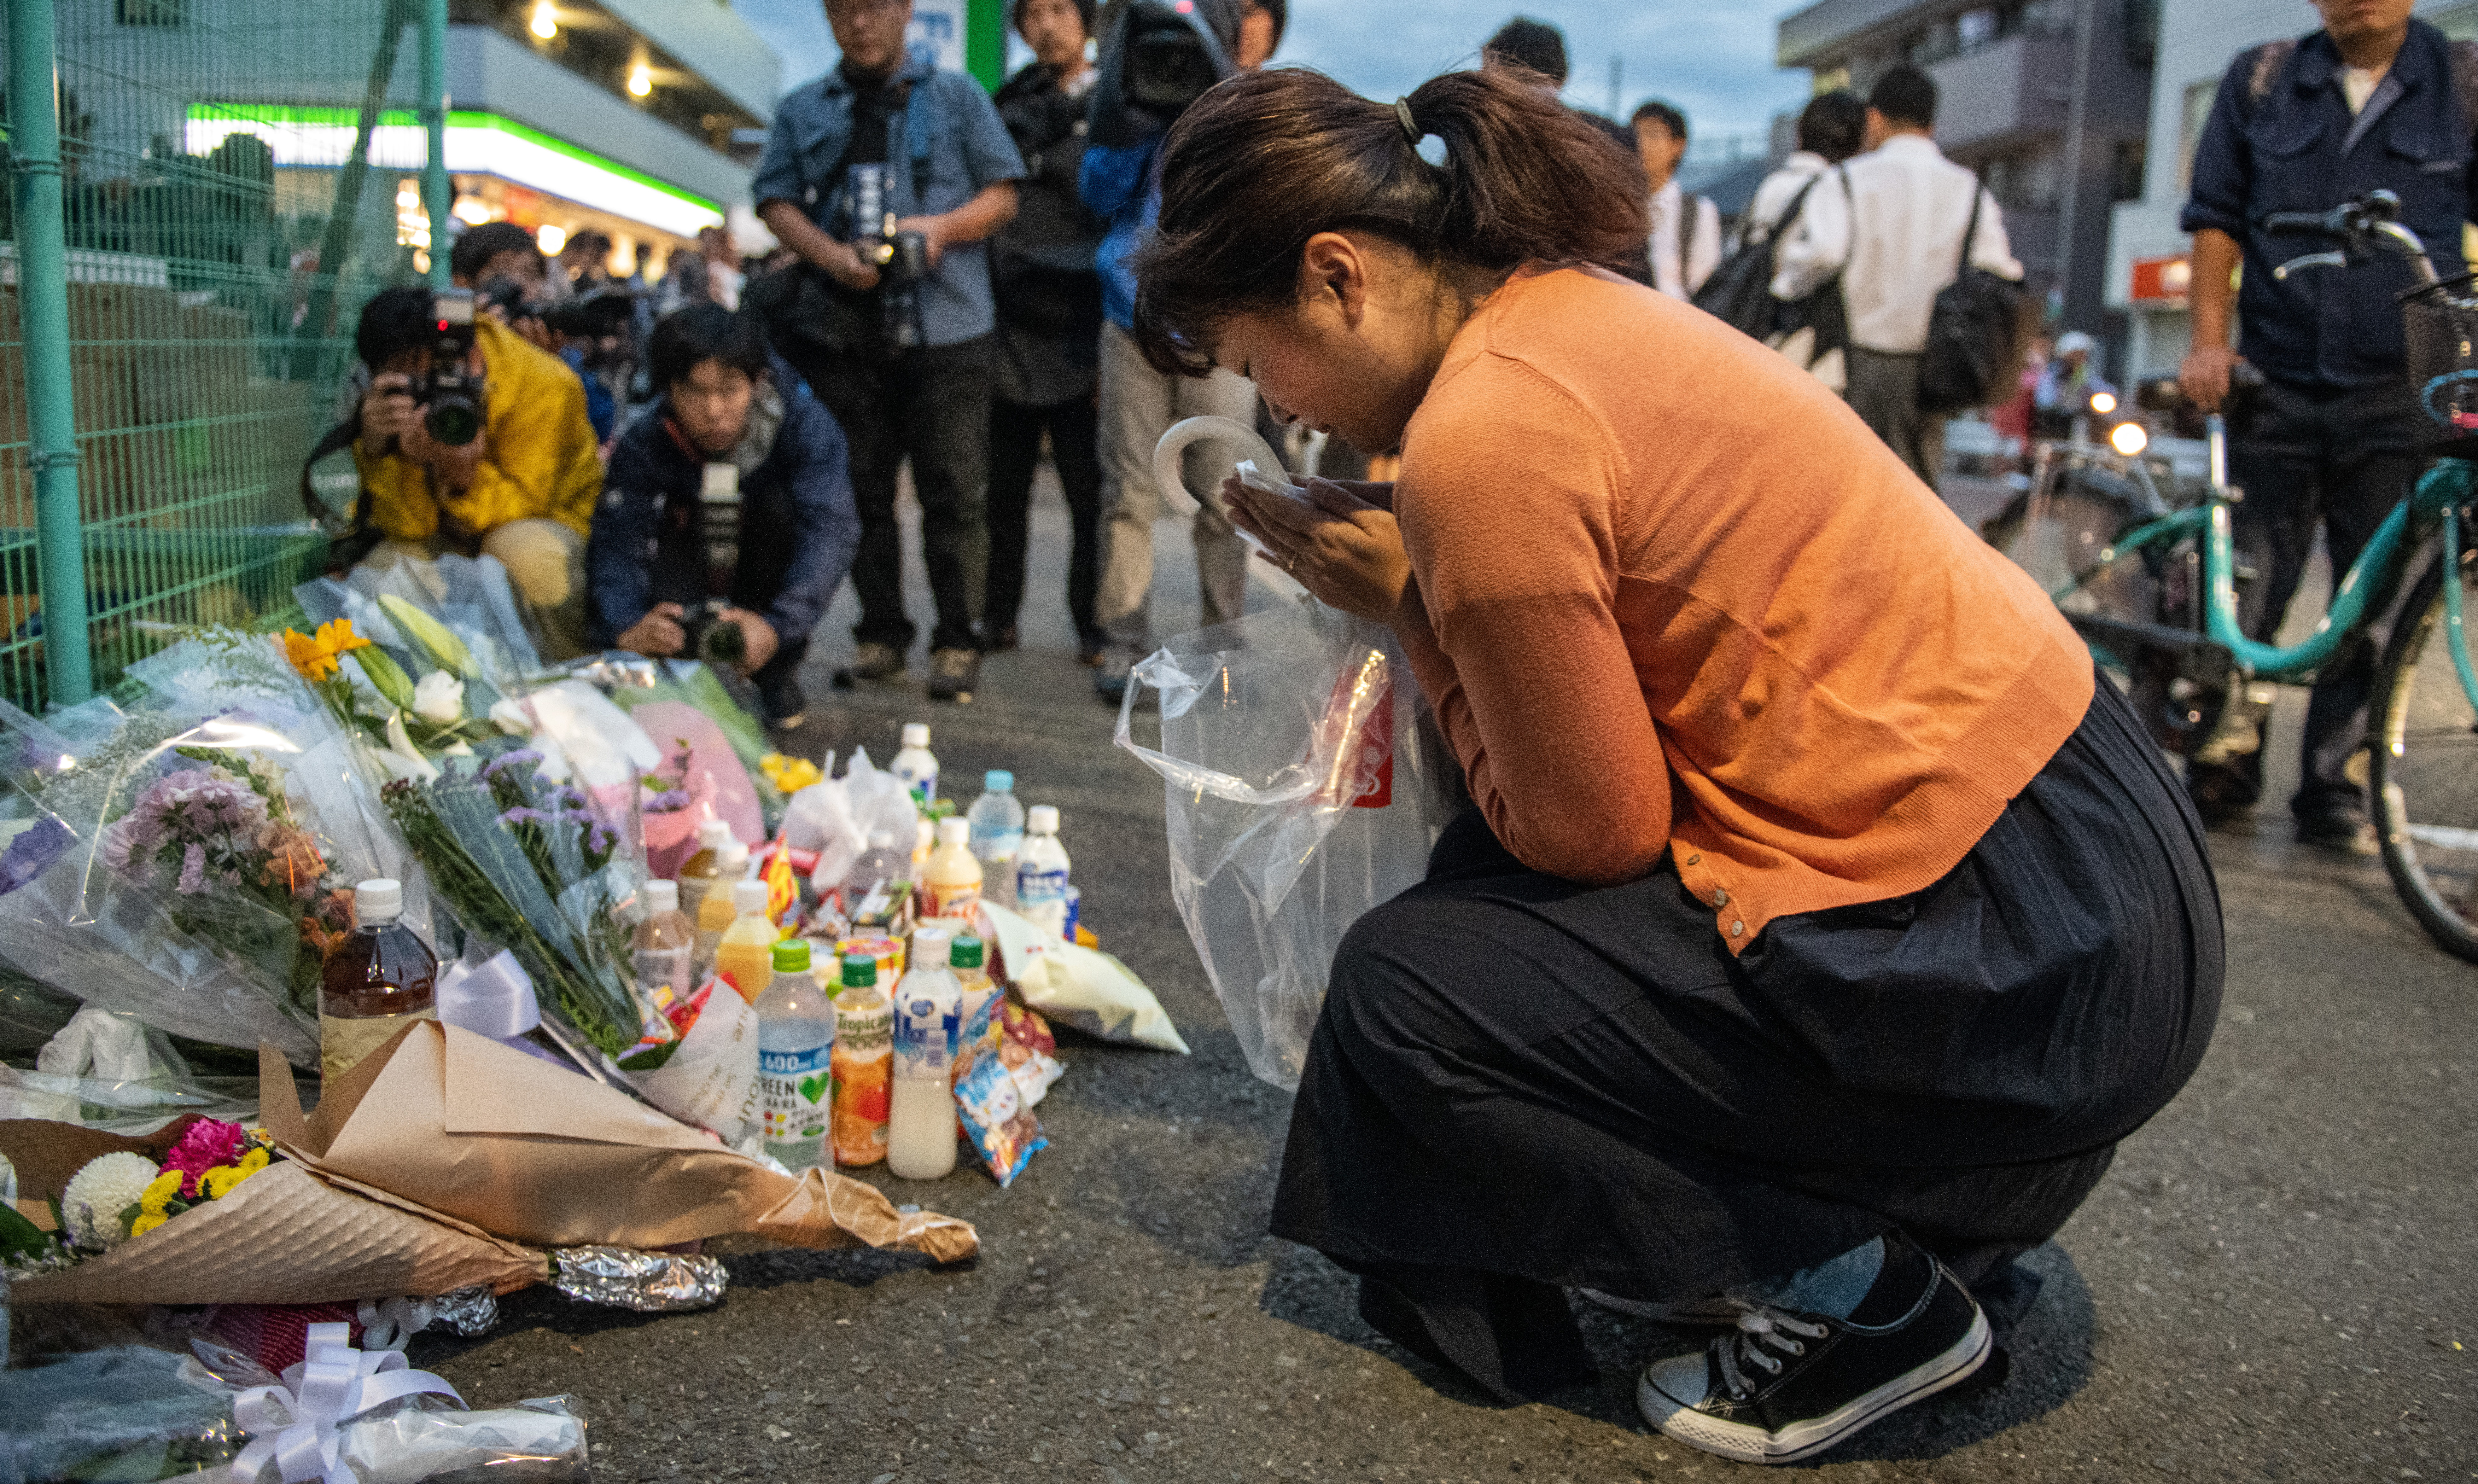 A woman prays at the scene of a knife attack on a group of schoolchildren.